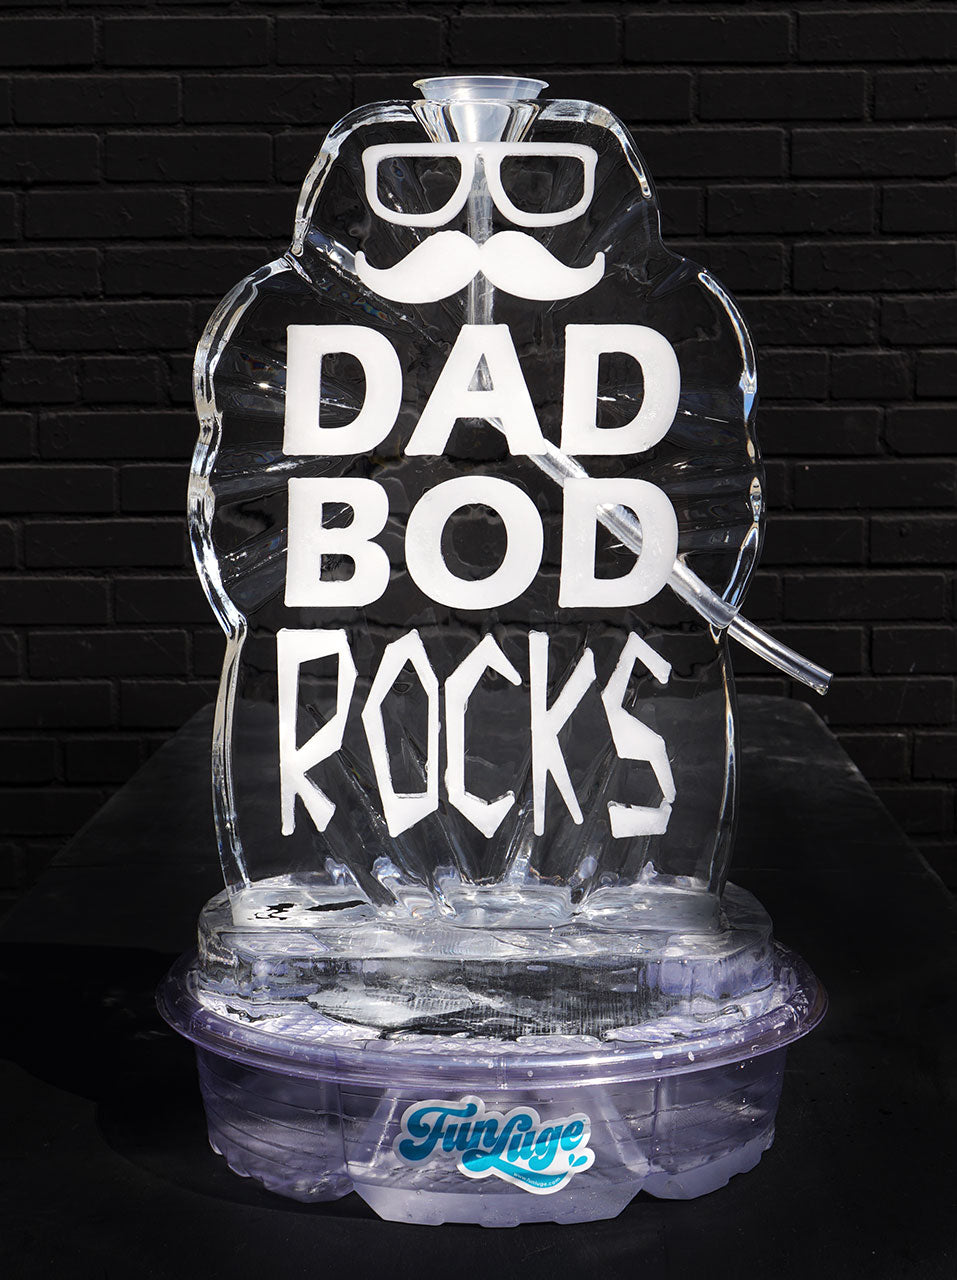 DAD BOD ROCKS